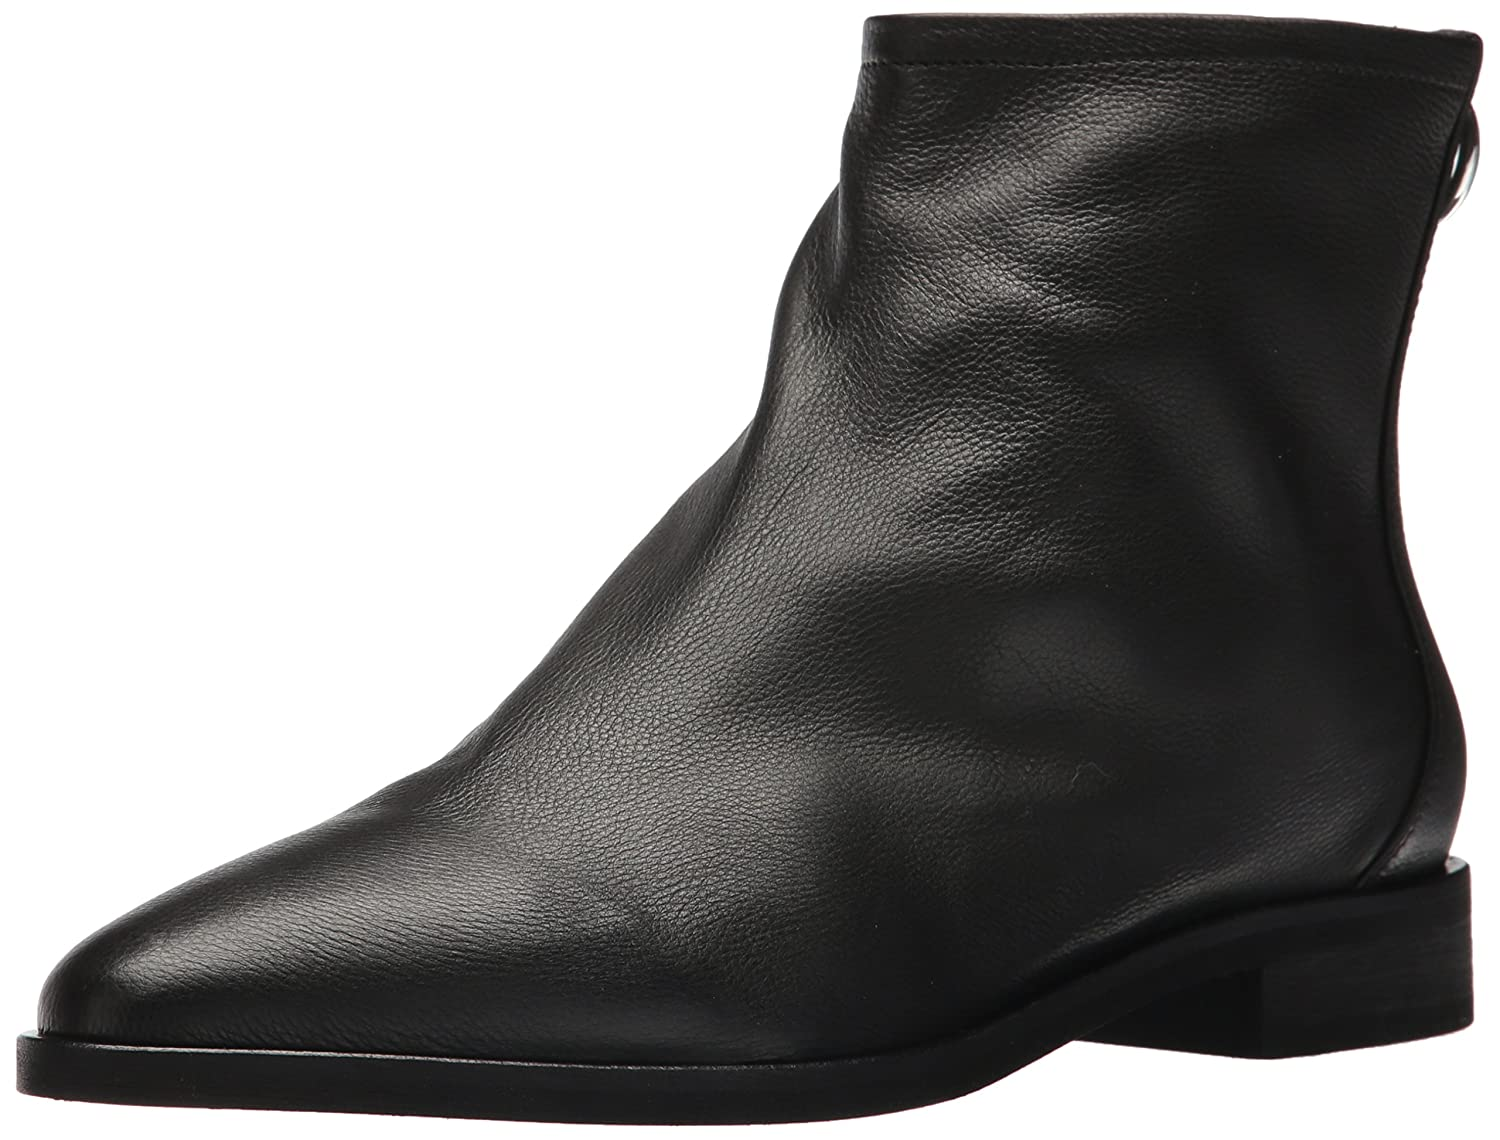 Via Spiga Women's Edie Ankle Boot B074CZBH29 7.5 B(M) US|Black Leather